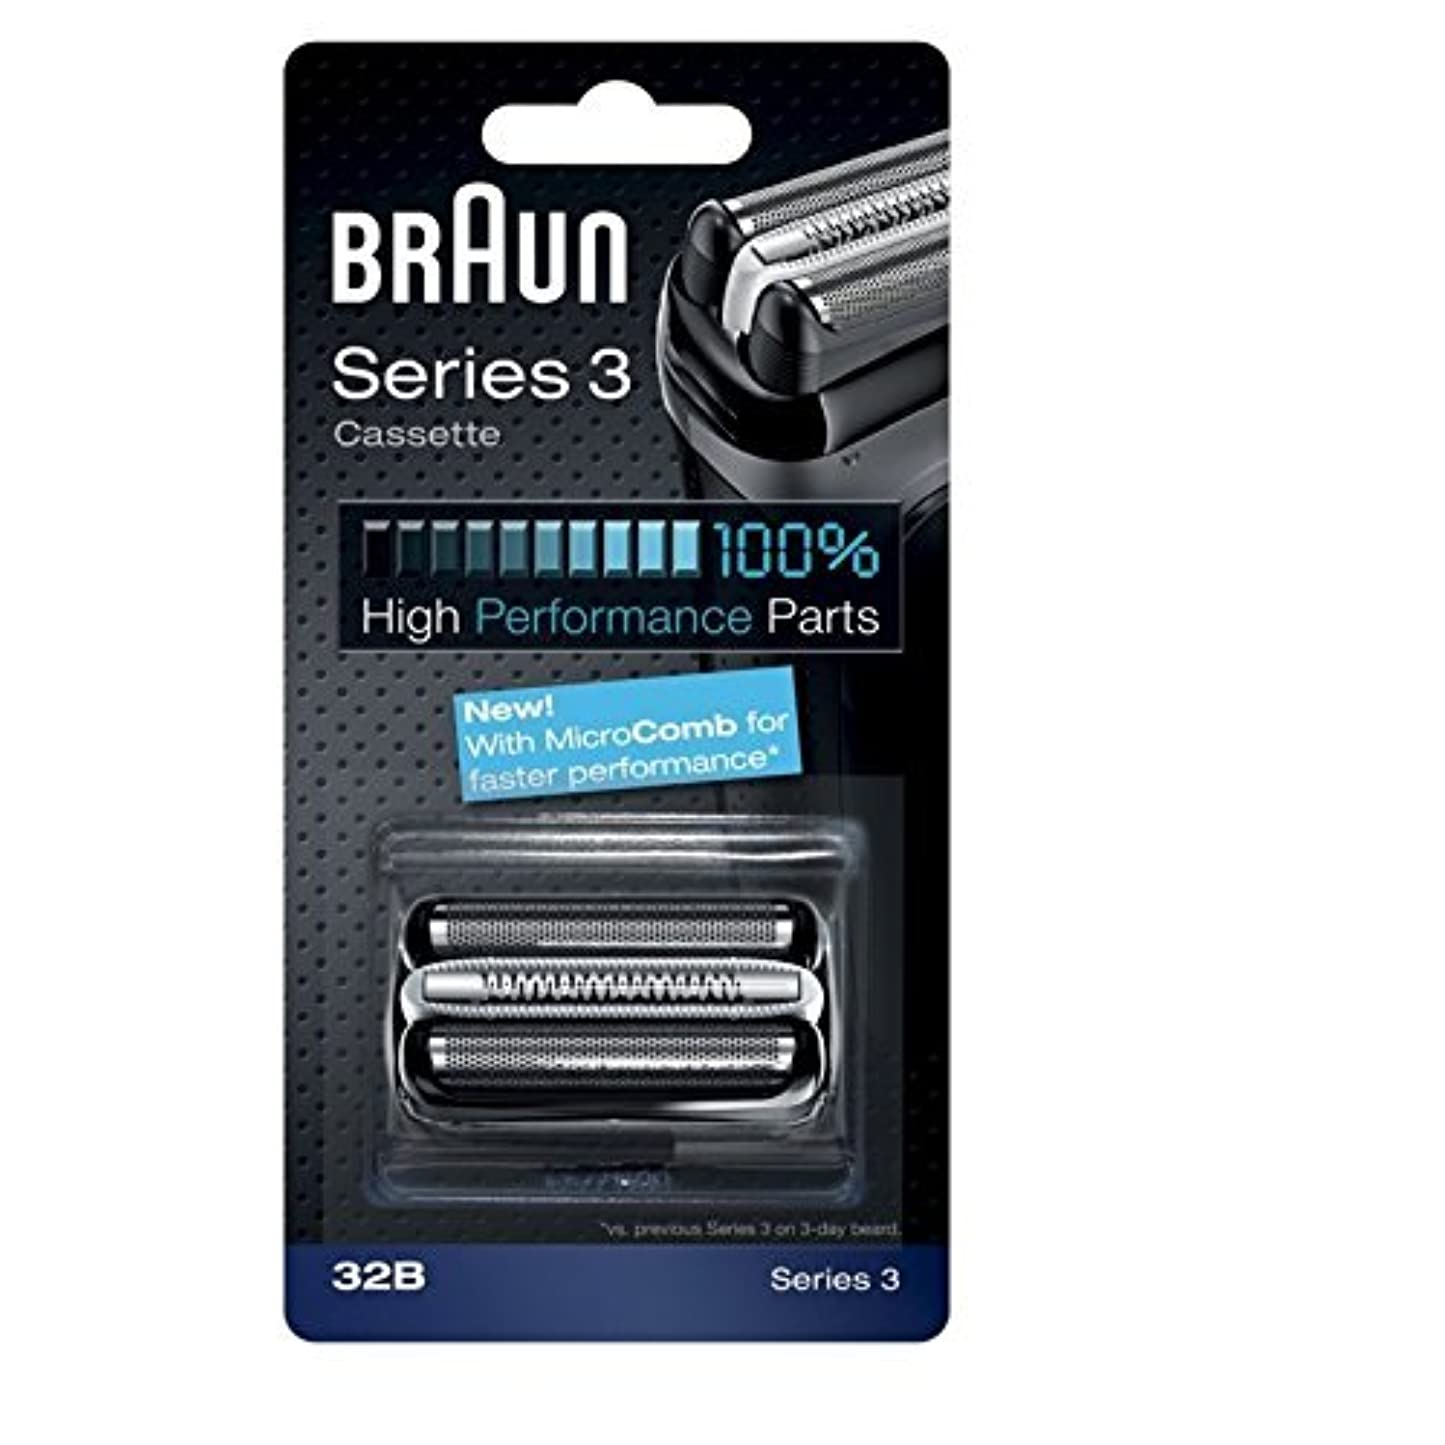 人工的なロック解除敵意Braun razor Replacement Foil & Cutter Cassette 32B Series 3 320 330 340 350CC black shaving heads [並行輸入品]